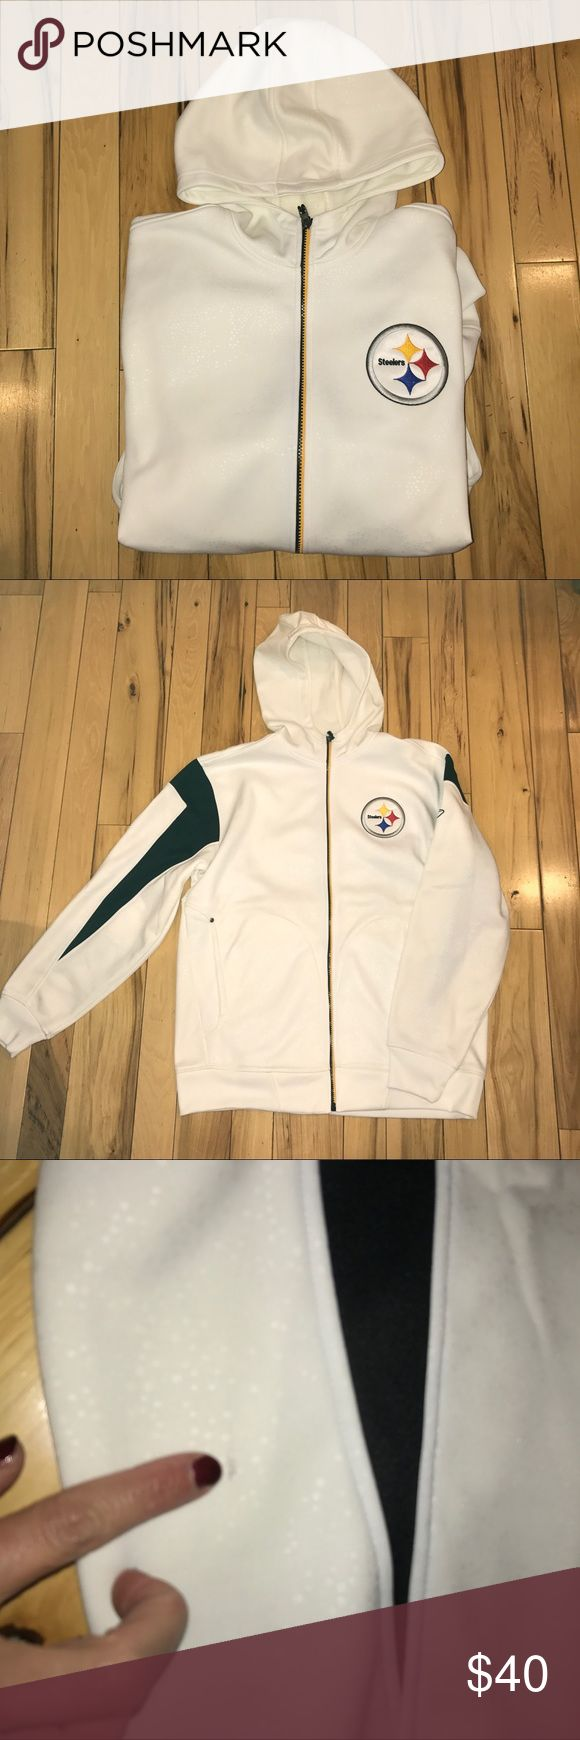 Steelers Hoodie Worn once! Reebok Onfield hoodie. Full zip. NFL patch on arm. White with reflective like detail. See photos. Smoke free home. Small mark on arm (see pic) but could probably come out in wash. Smoke free home. Shirts Sweatshirts & Hoodies